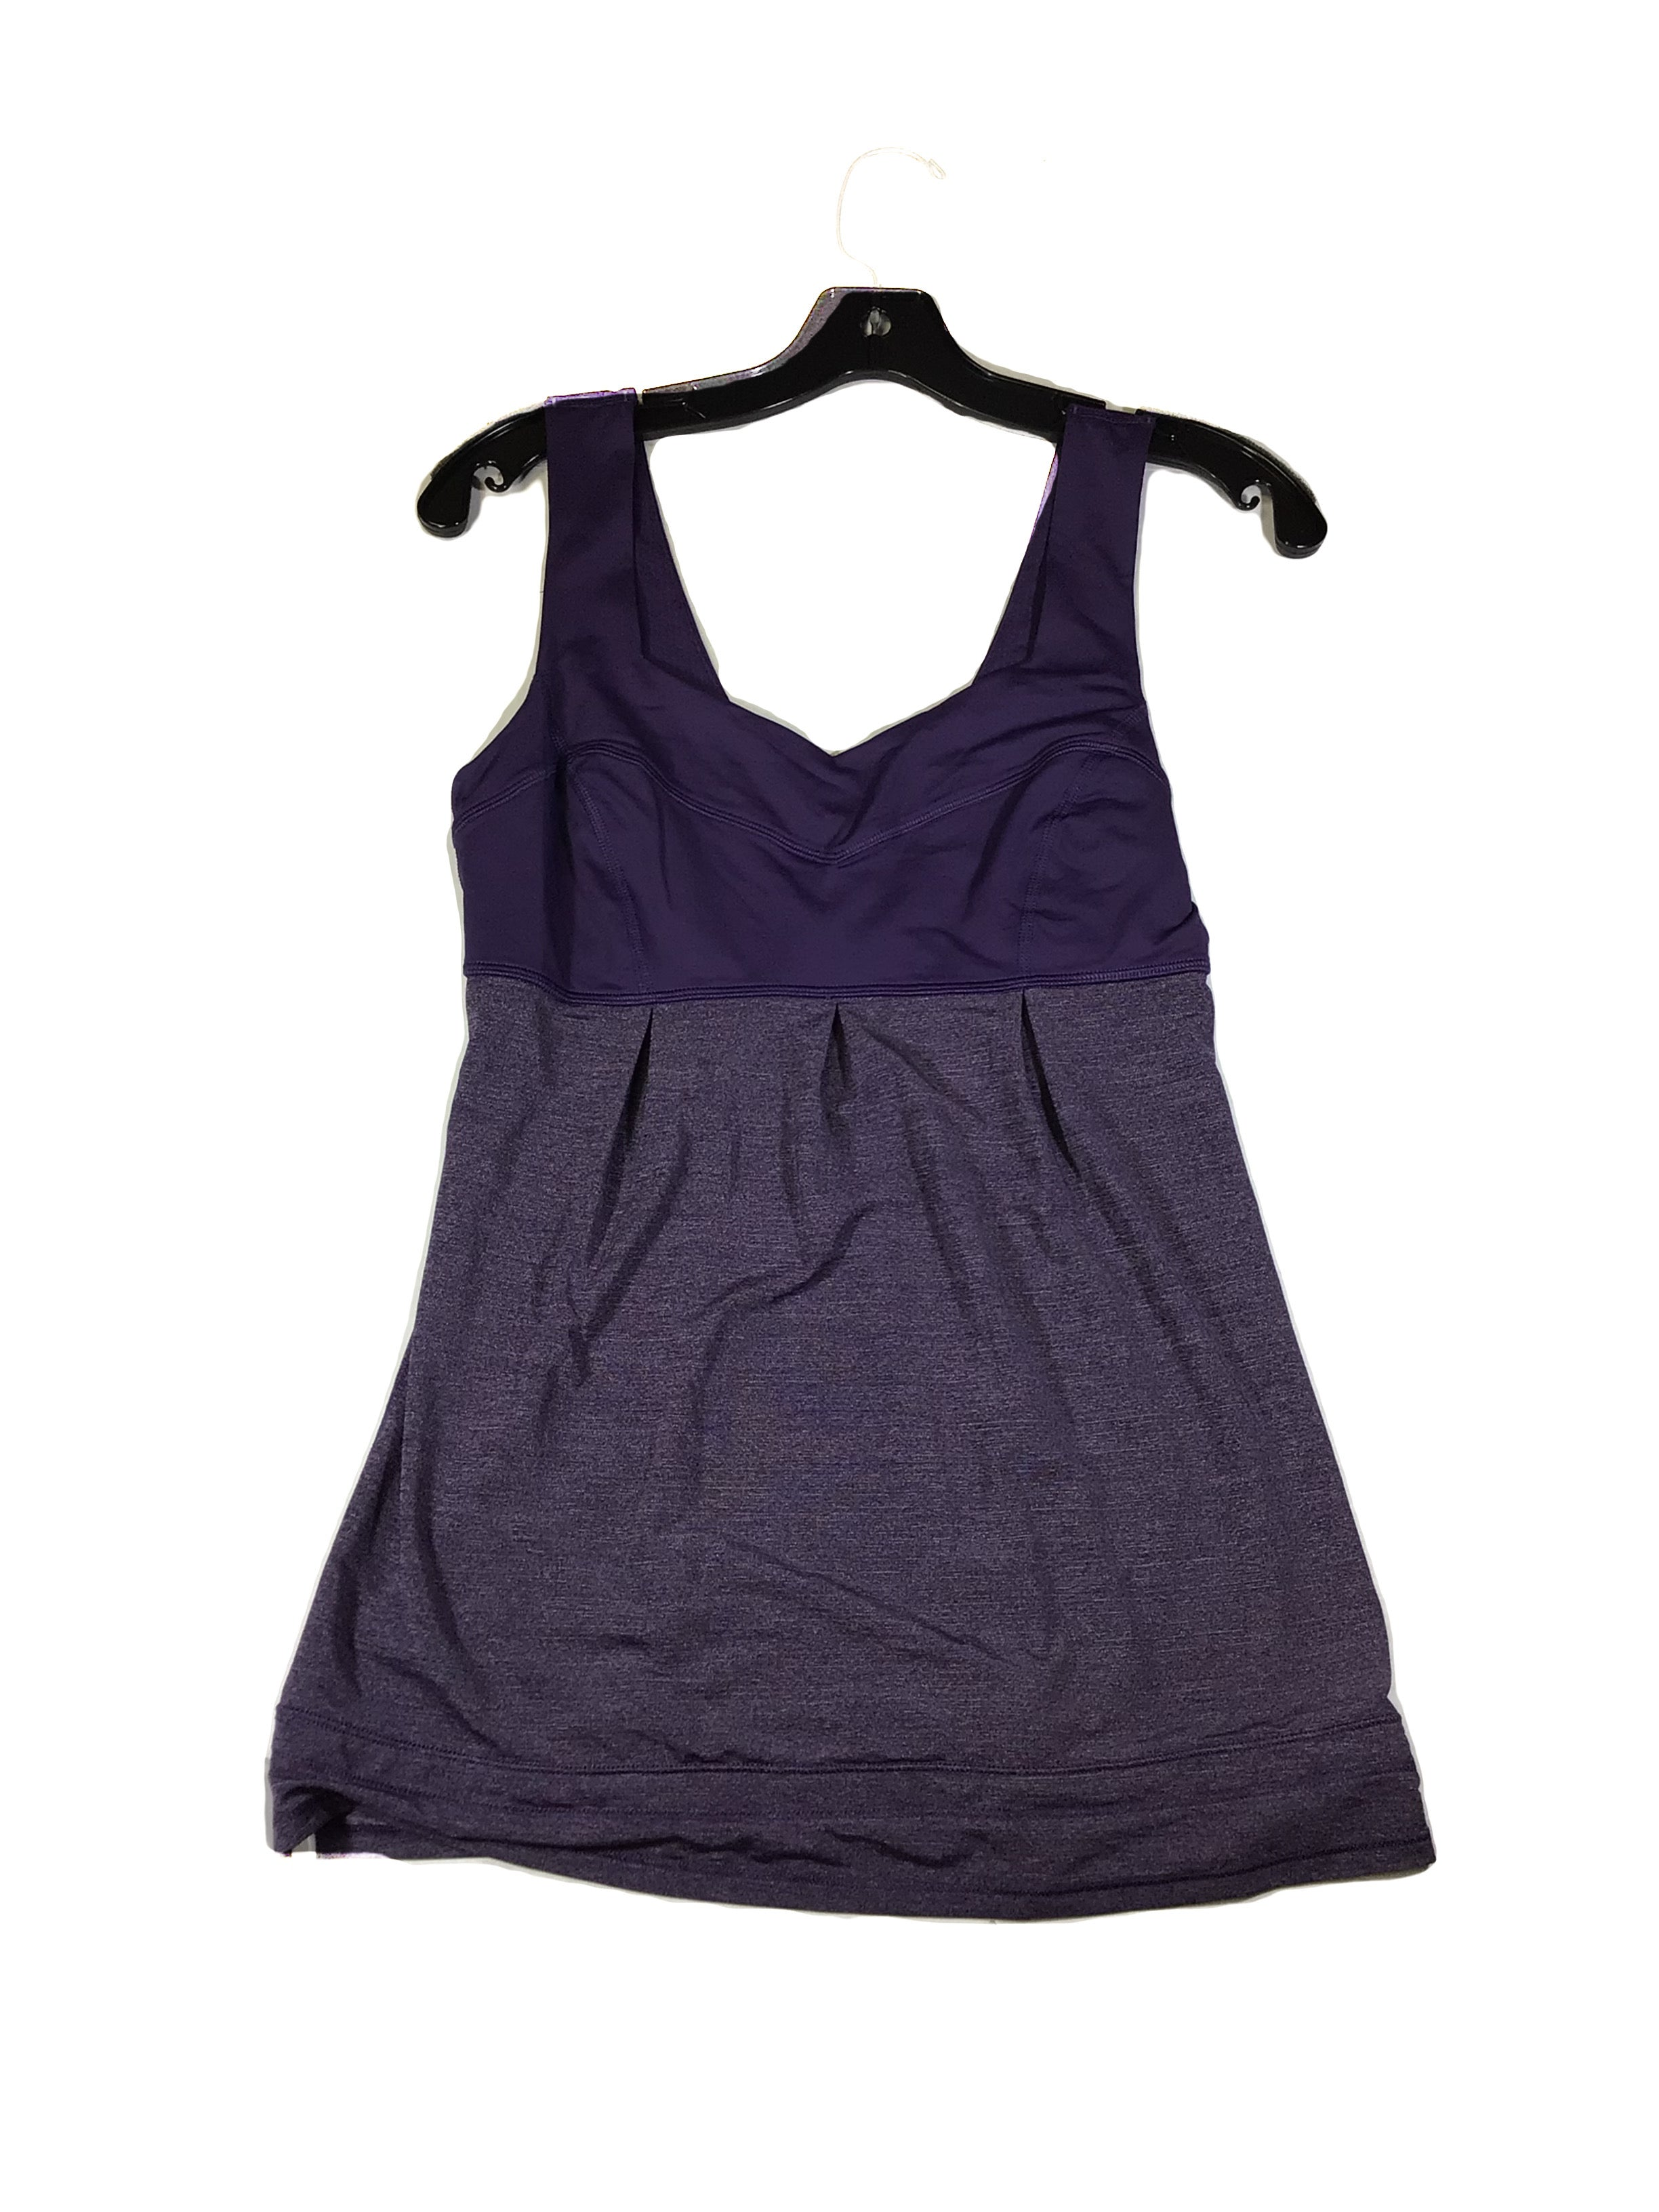 Primary Photo - BRAND: LULULEMON <BR>STYLE: ATHLETIC TANK TOP <BR>COLOR: PURPLE <BR>SIZE: 6 <BR>SKU: 213-213154-323<BR>LULU LEMON